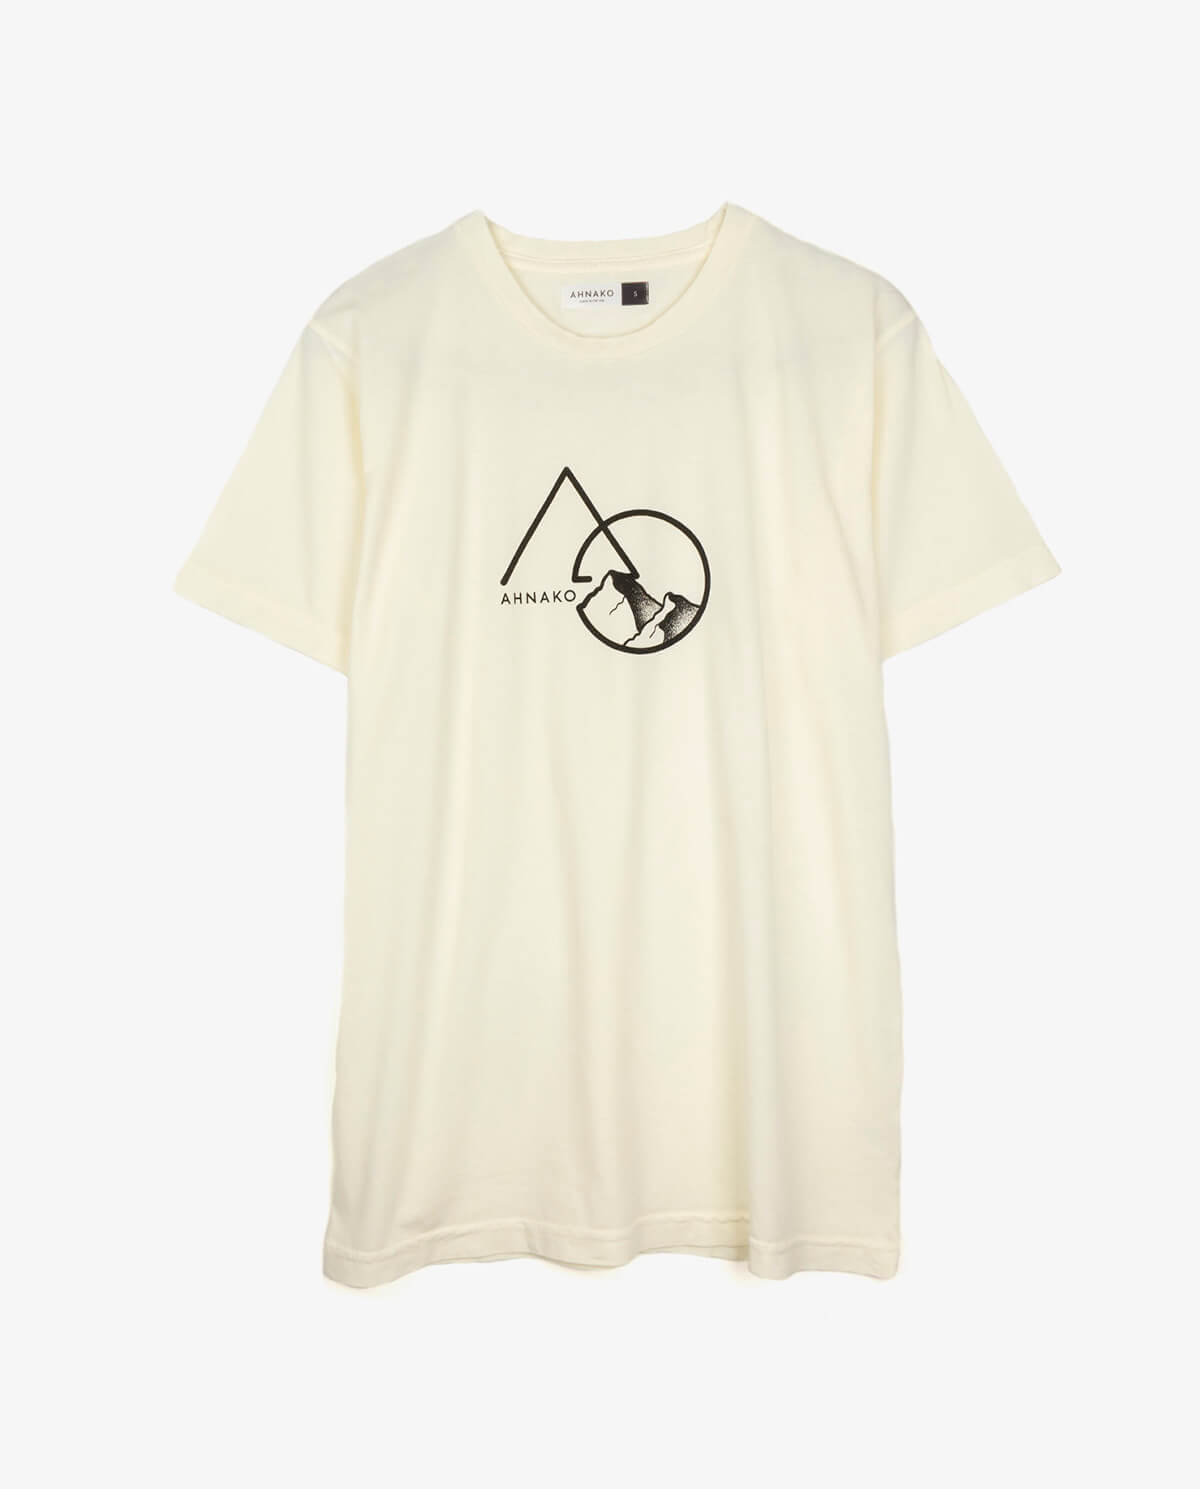 Ahnako Mountains - Cream T-shirt